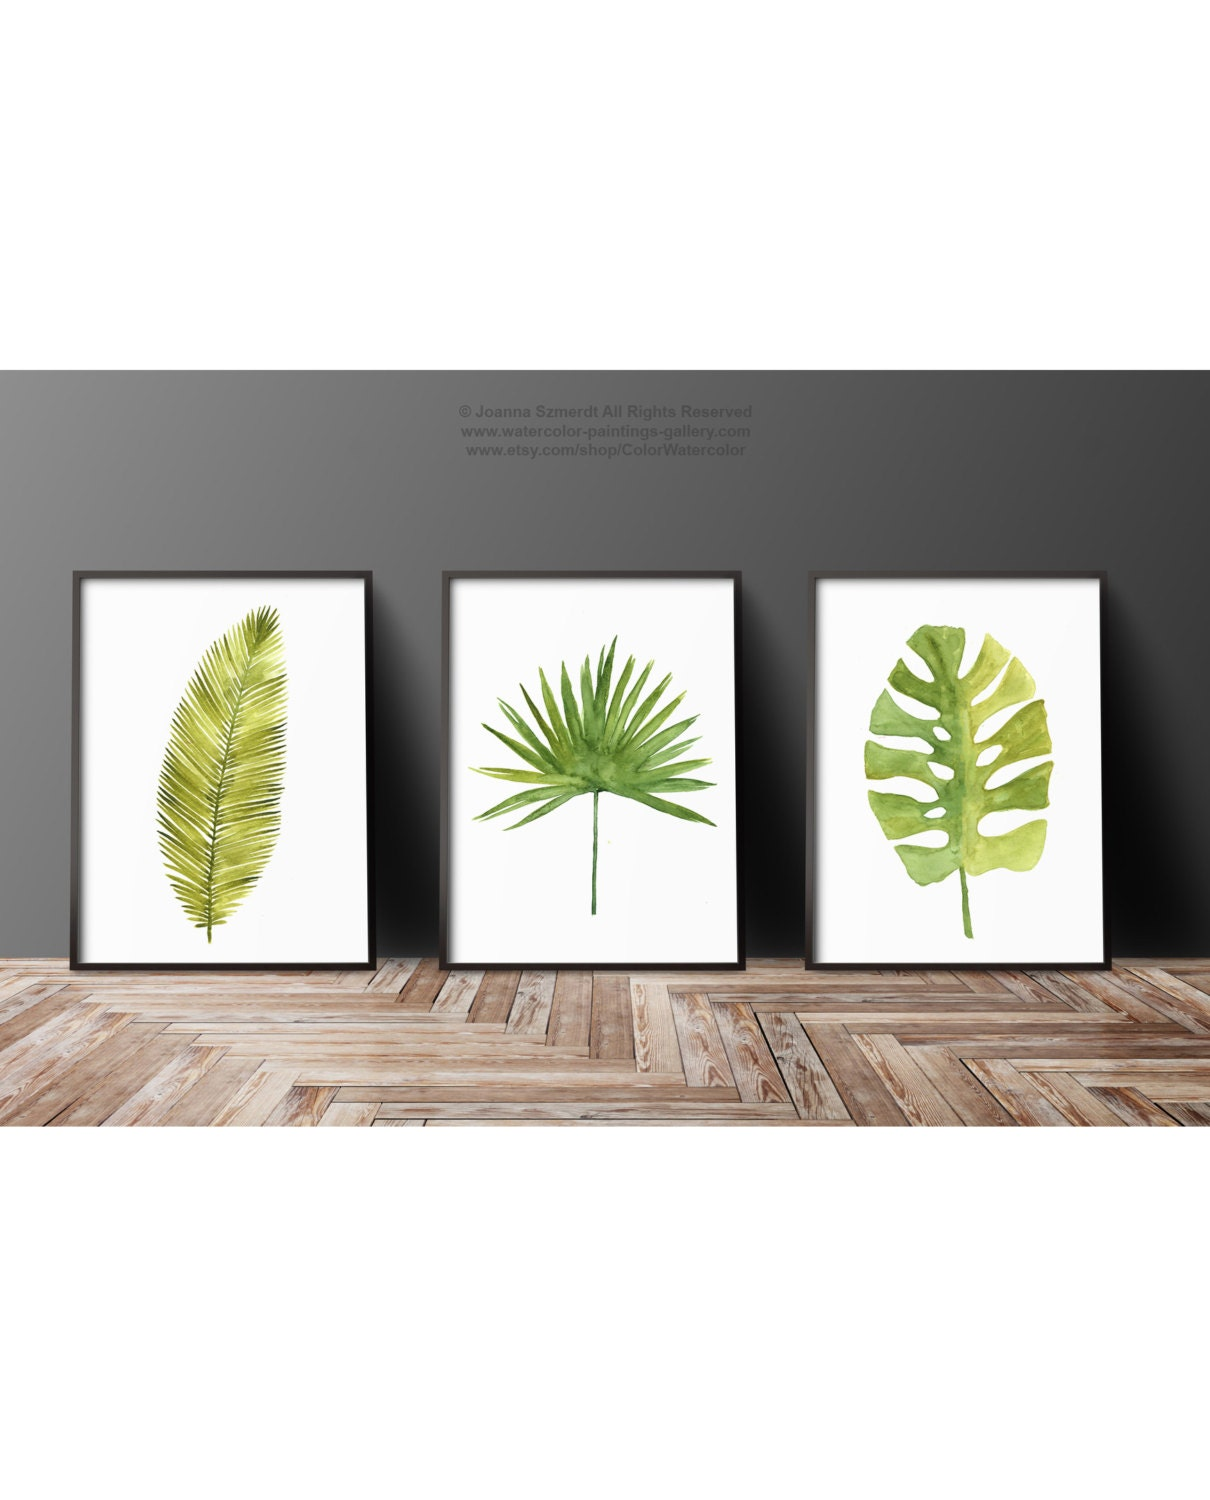 Watercolor leaf abstract wall decor minimalist modern for Minimalist wall decor